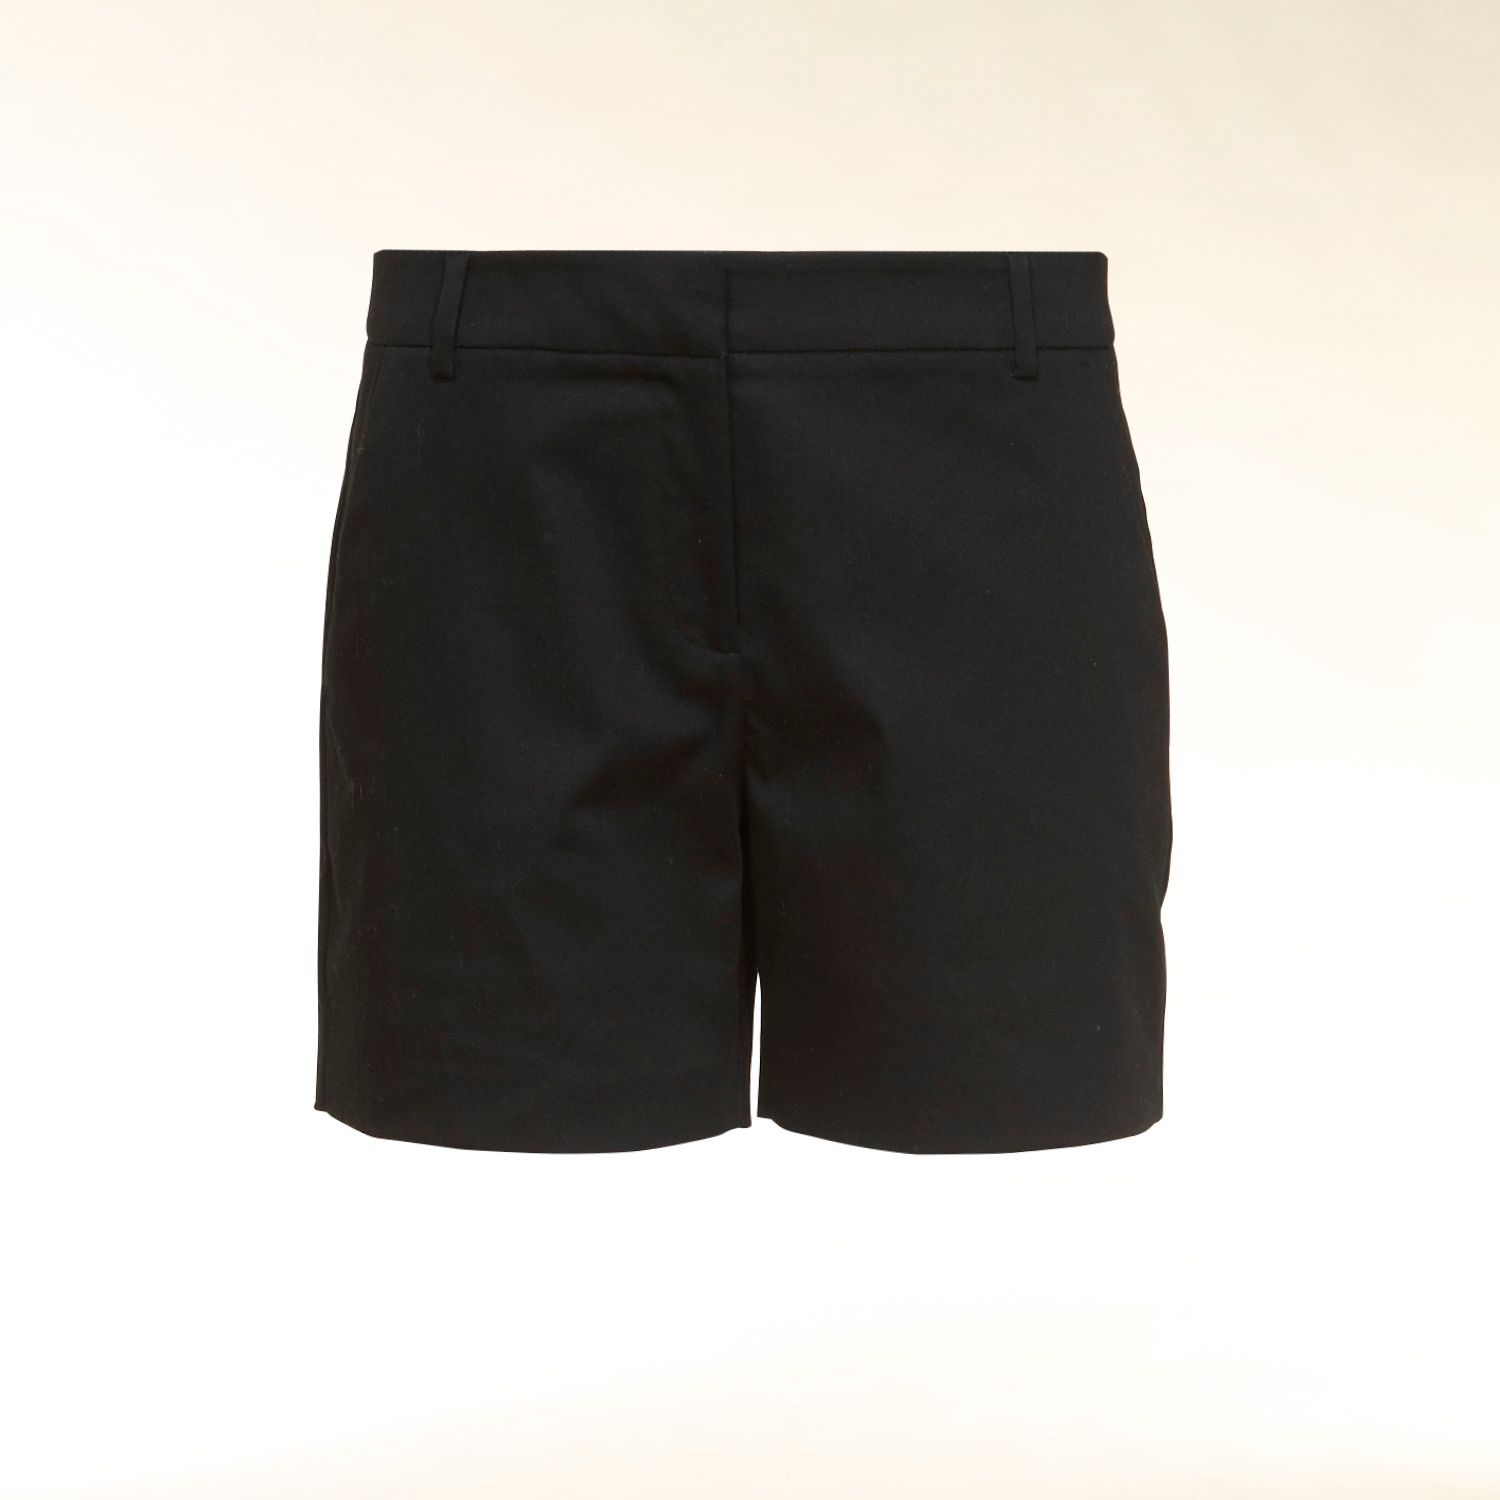 Pocket detail shorts